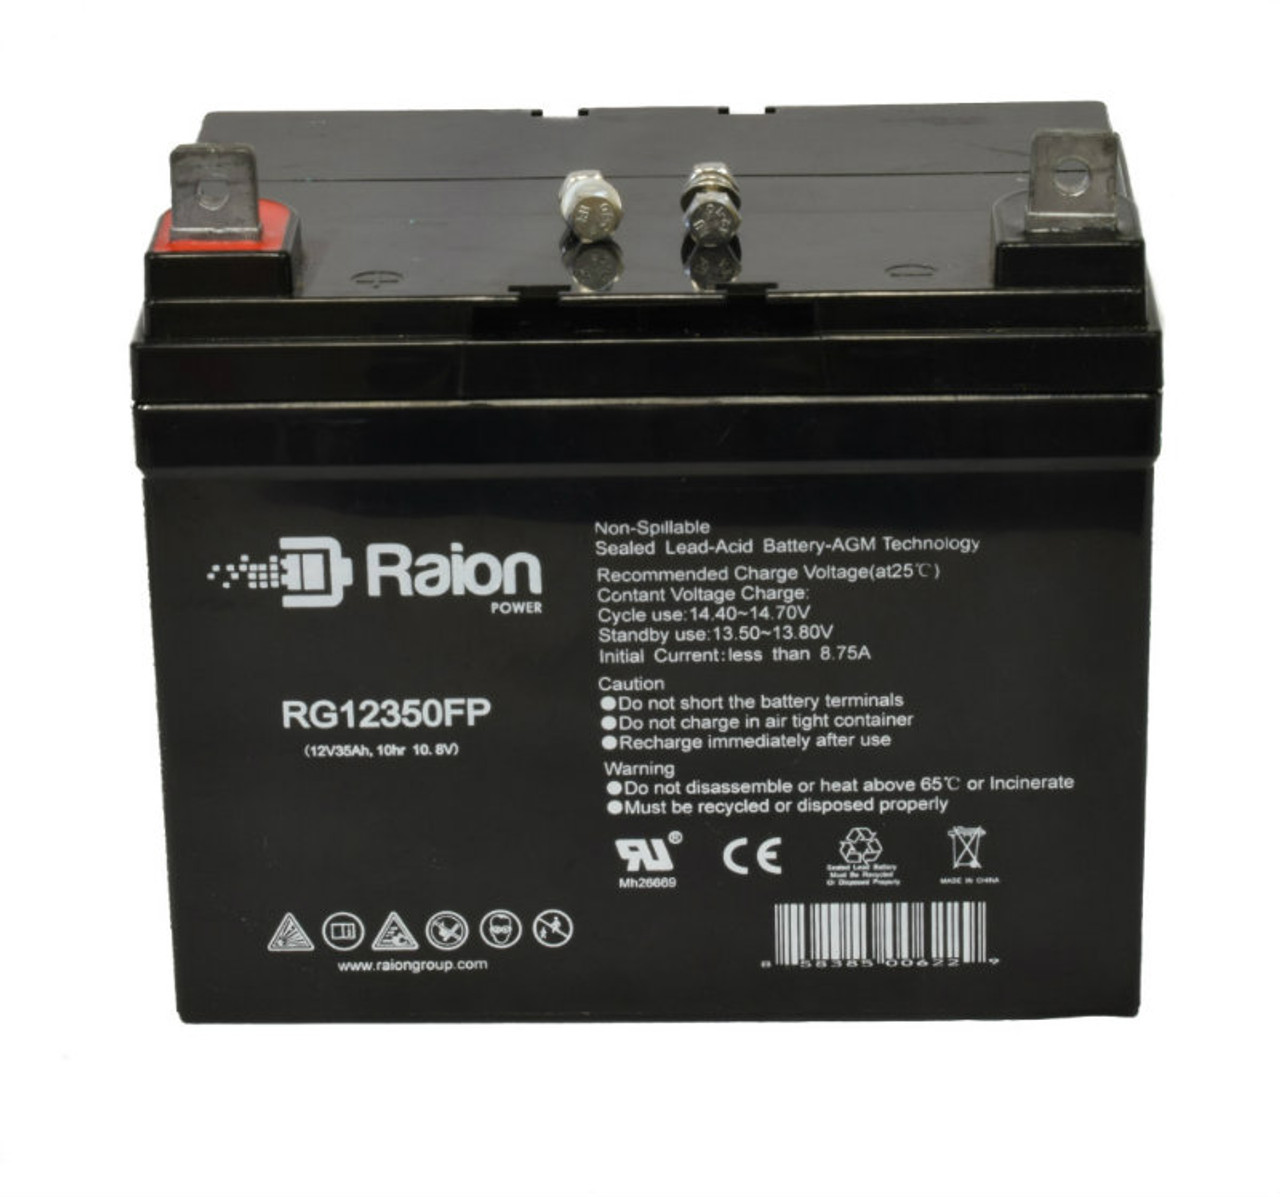 RG12350FP Sealed Lead Acid Battery Pack For Chauffeur Mobility Viva MWD U1 Powerchair Mobility Scooter